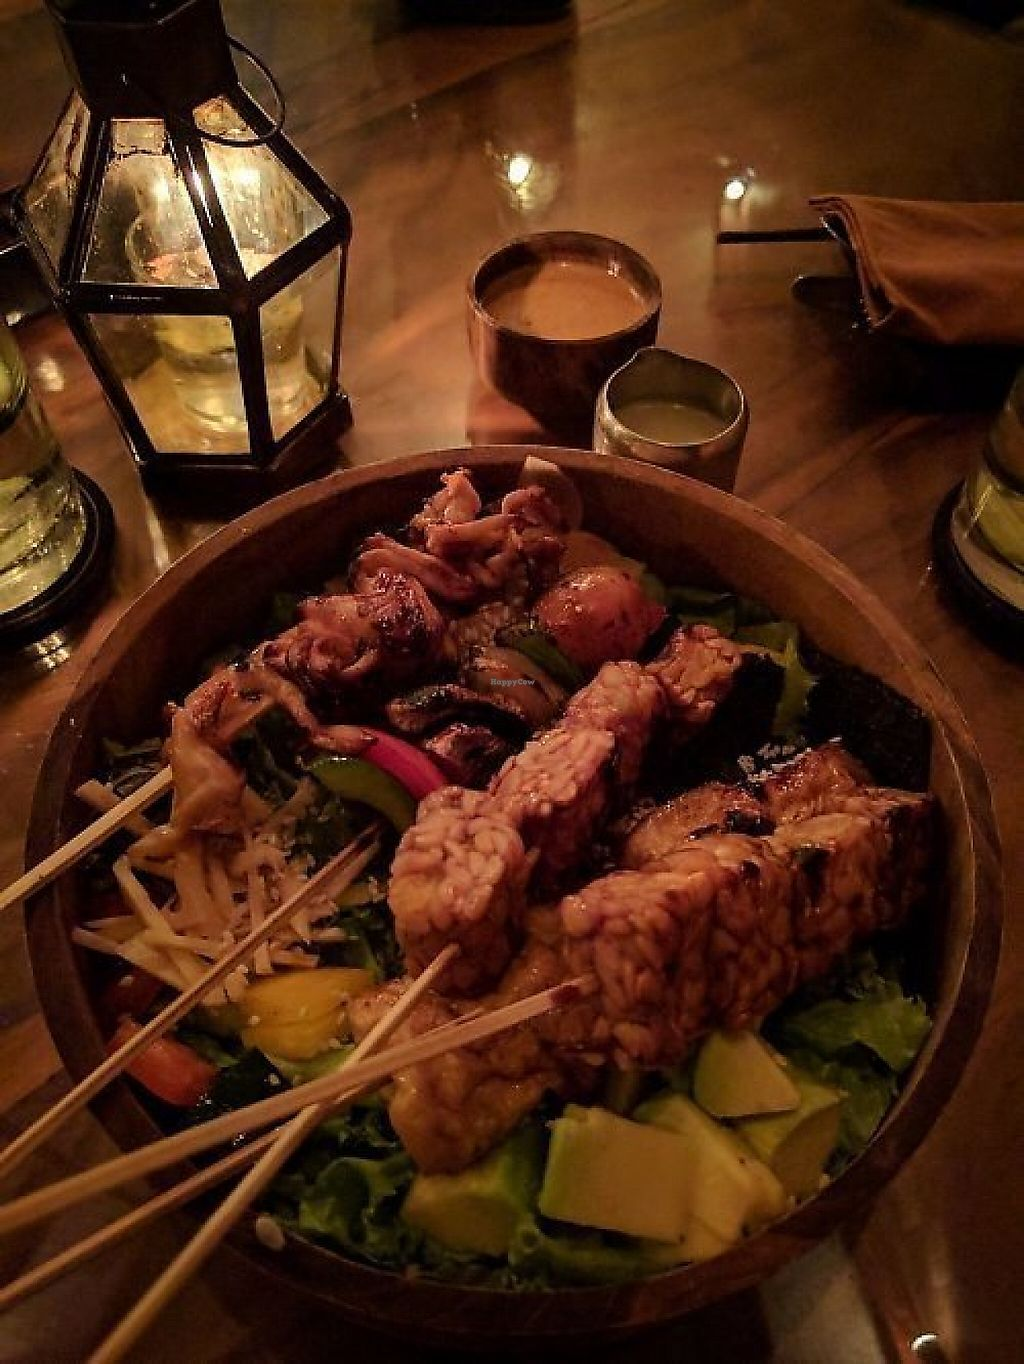 """Photo of Kismet Restaurant & Lounge  by <a href=""""/members/profile/wildeyedgirl"""">wildeyedgirl</a> <br/>Salad bowl with mixed vegan skewers <br/> May 16, 2017  - <a href='/contact/abuse/image/92216/259216'>Report</a>"""